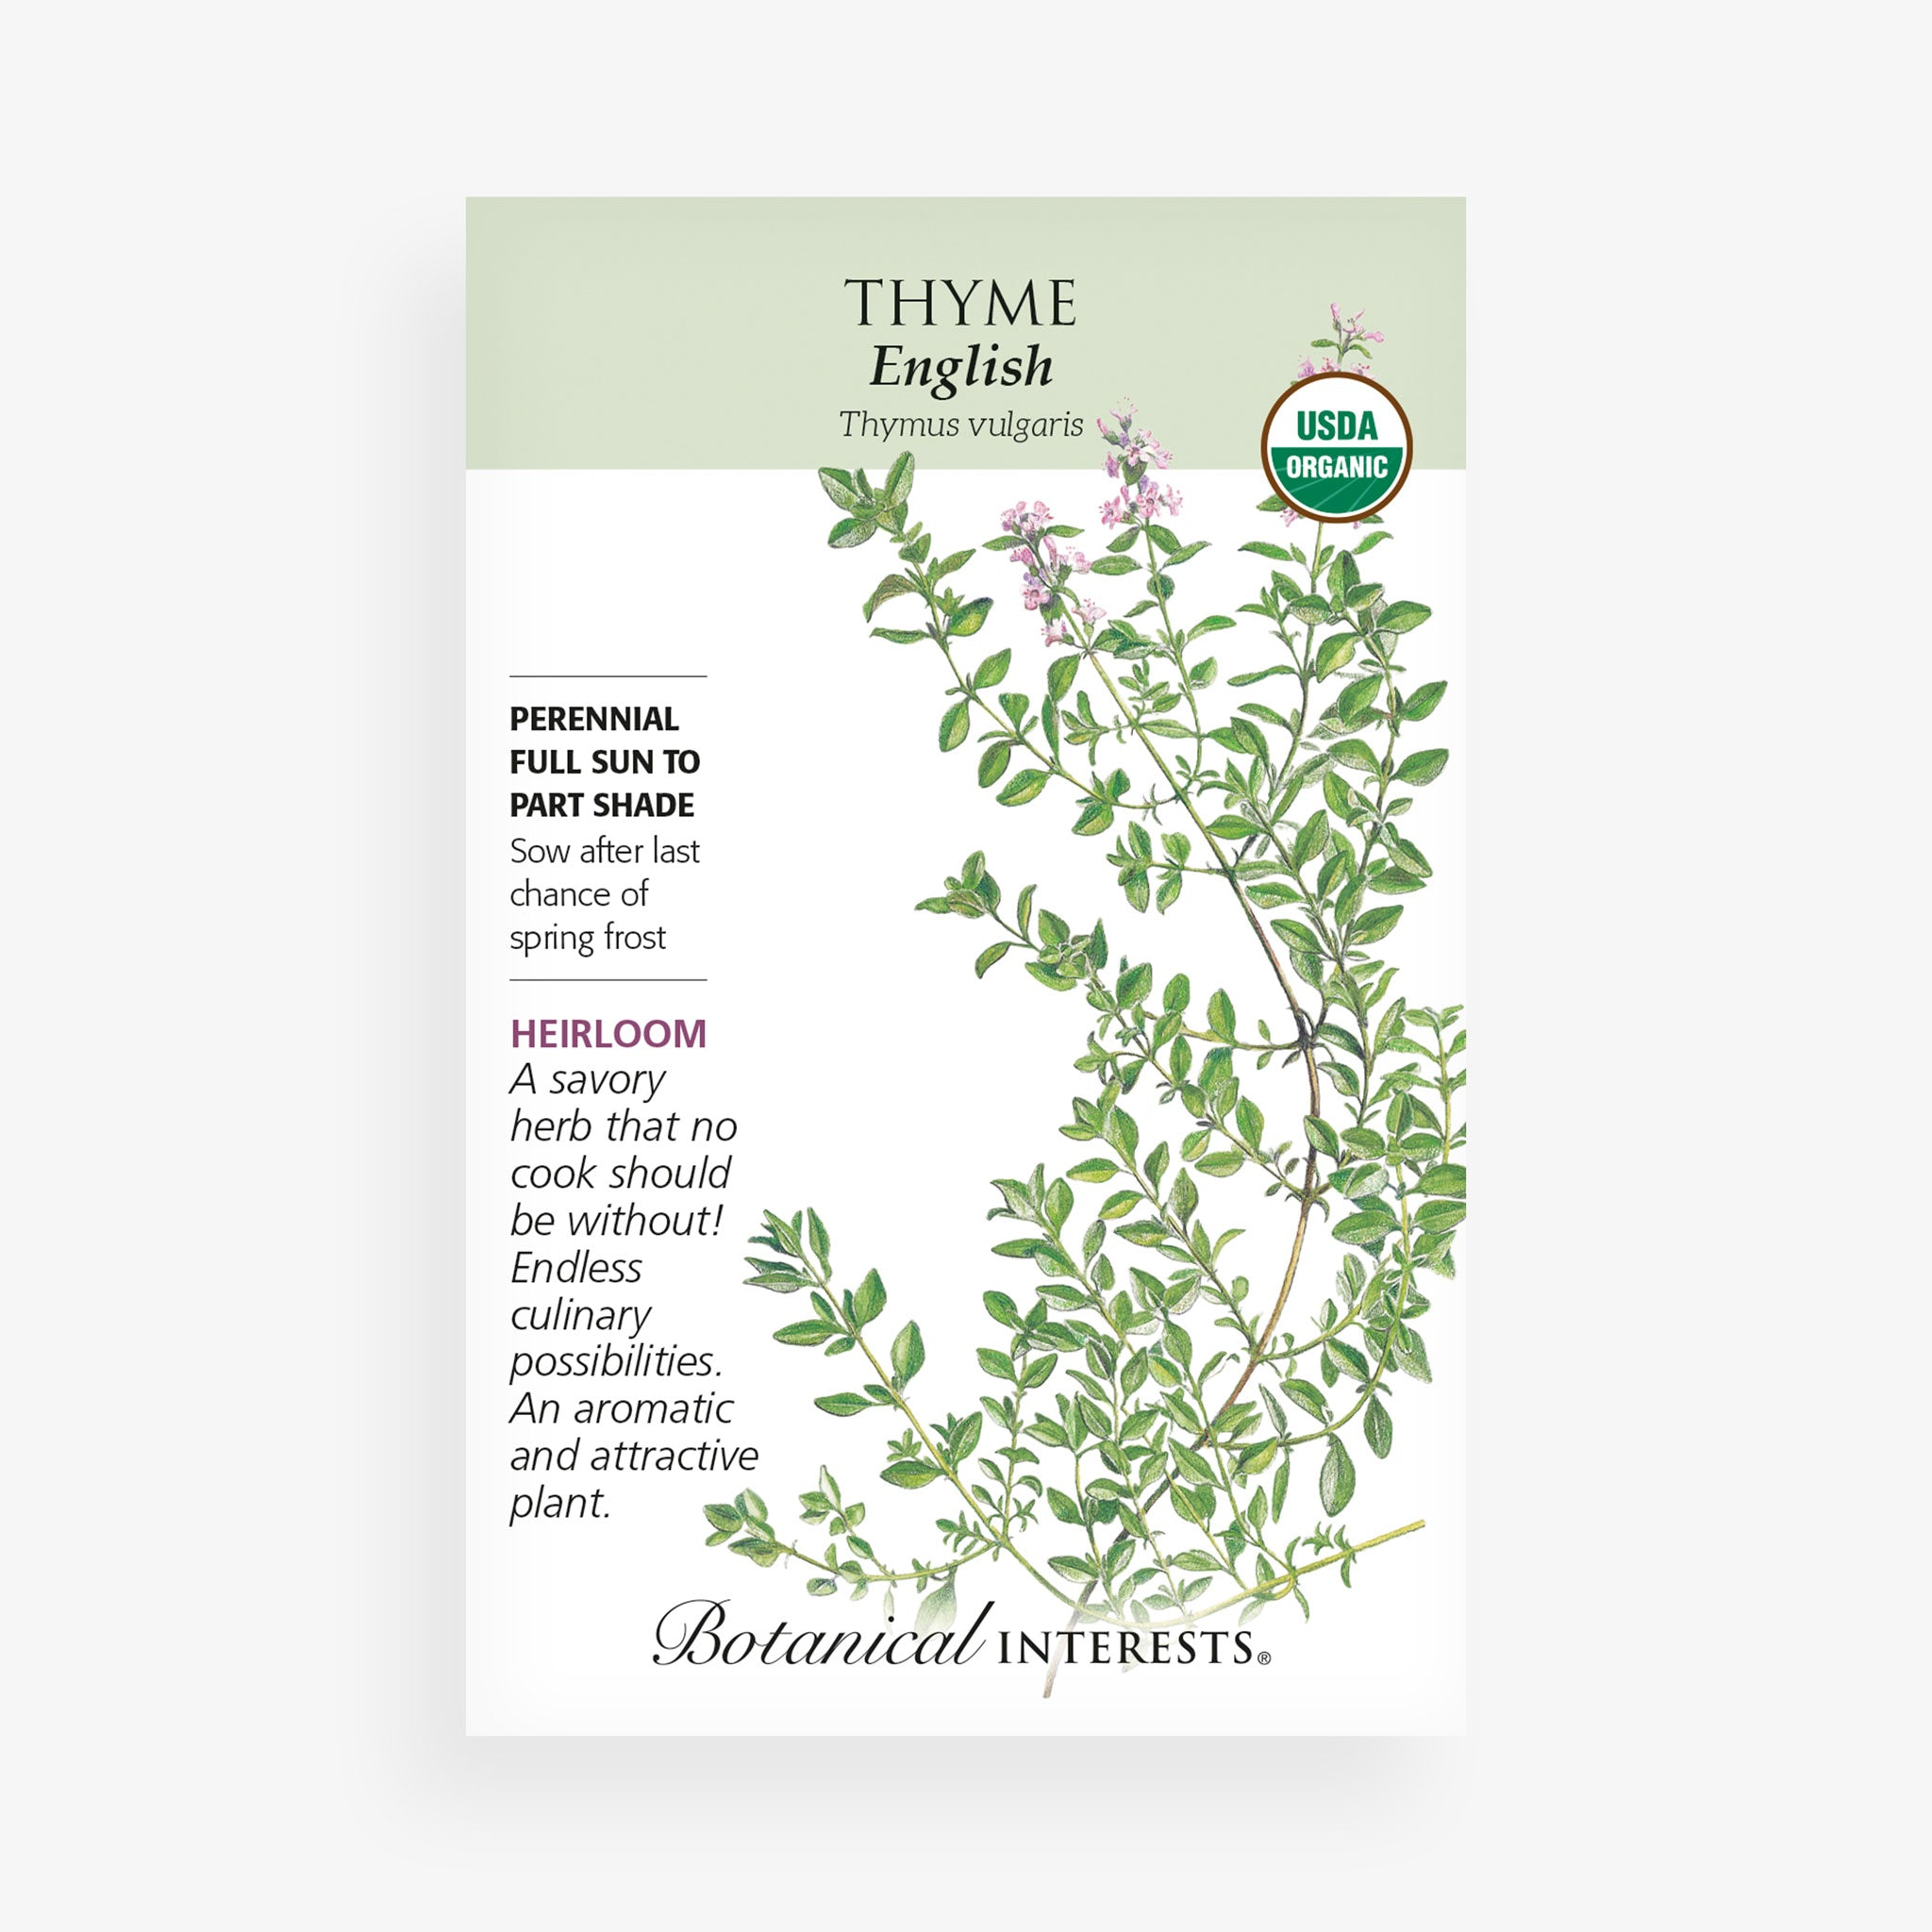 'English' Thyme Seed Packet